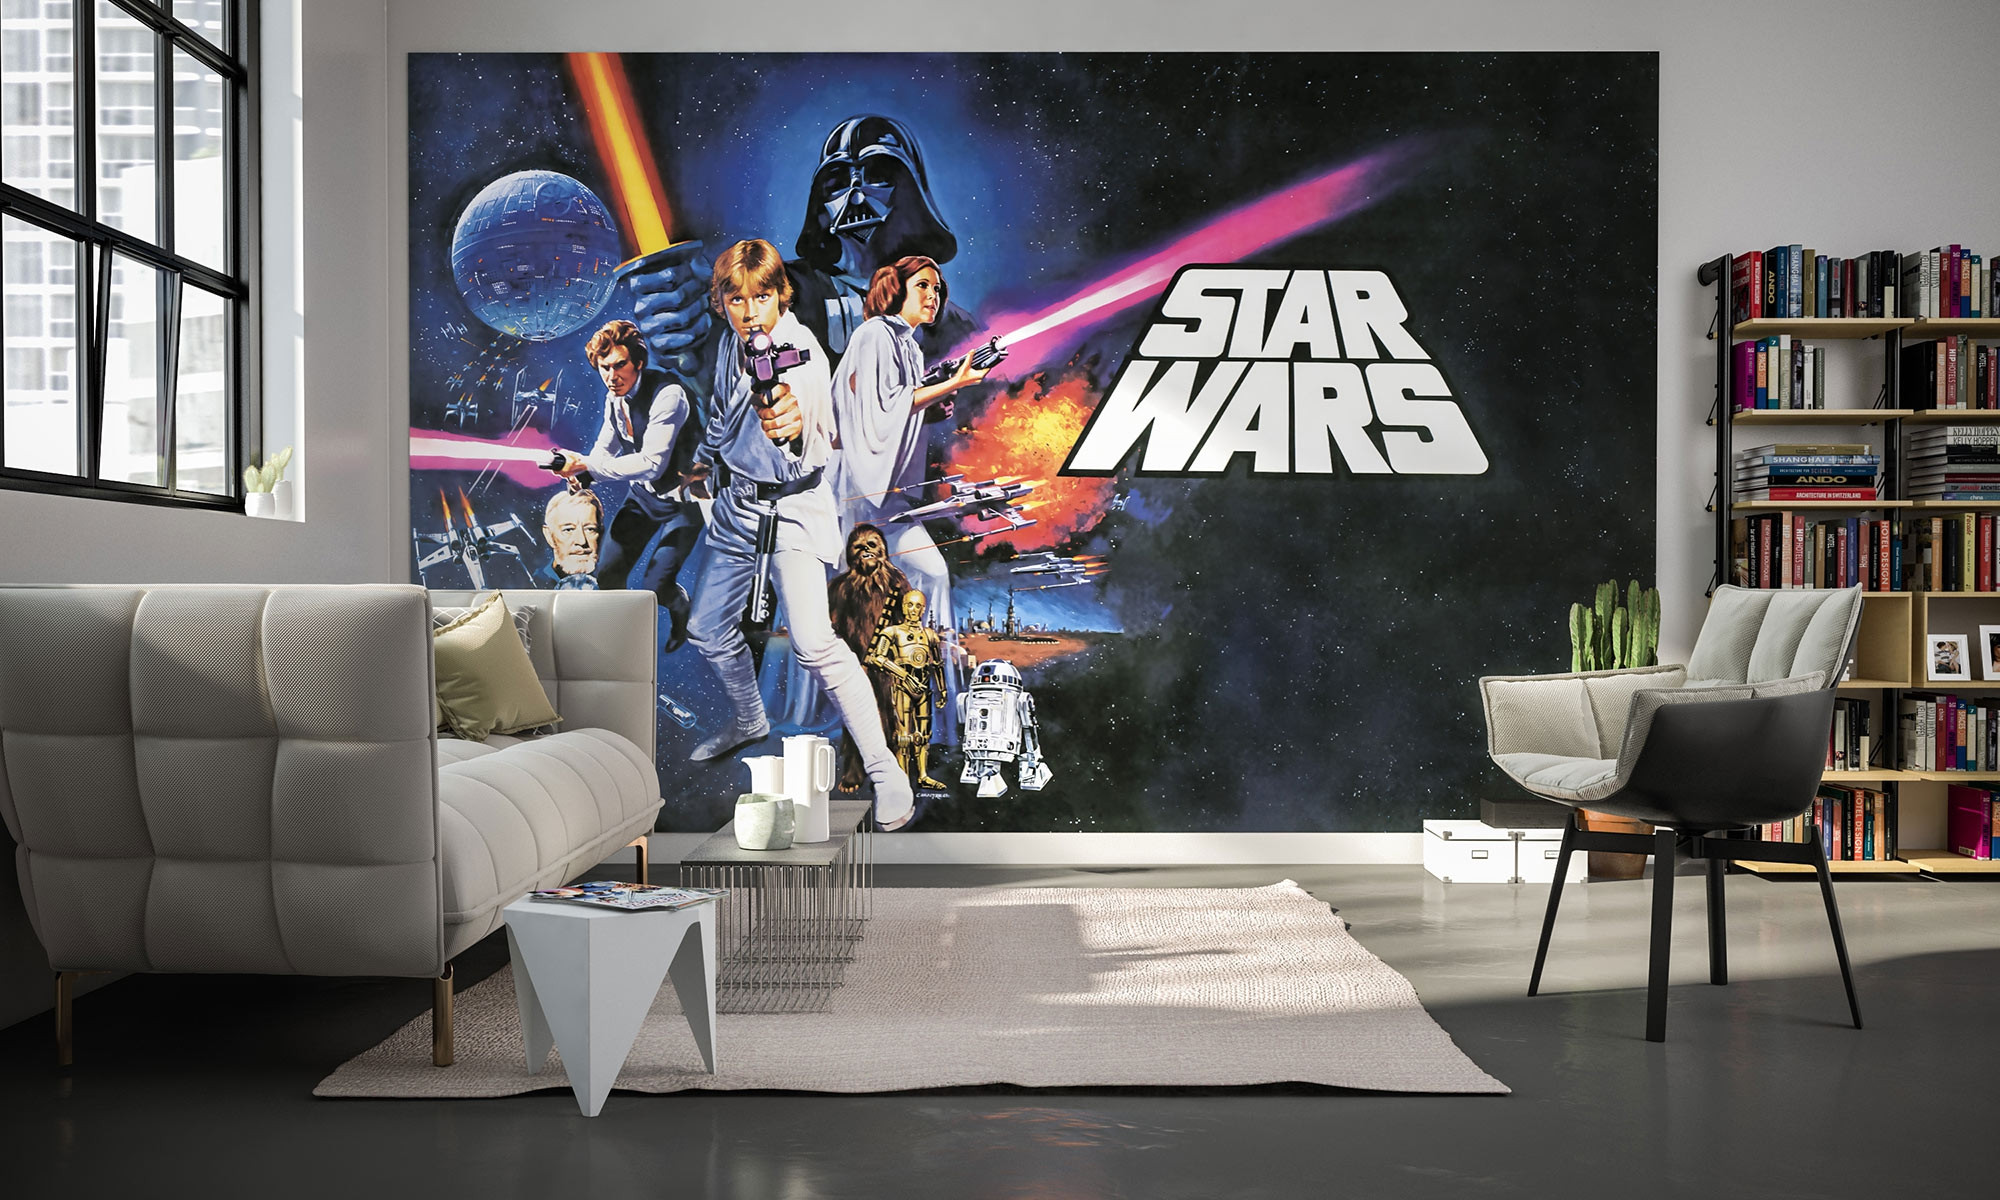 poster xxl panoramique intiss star wars poster classic 1 026 dvd4 de komar star wars. Black Bedroom Furniture Sets. Home Design Ideas